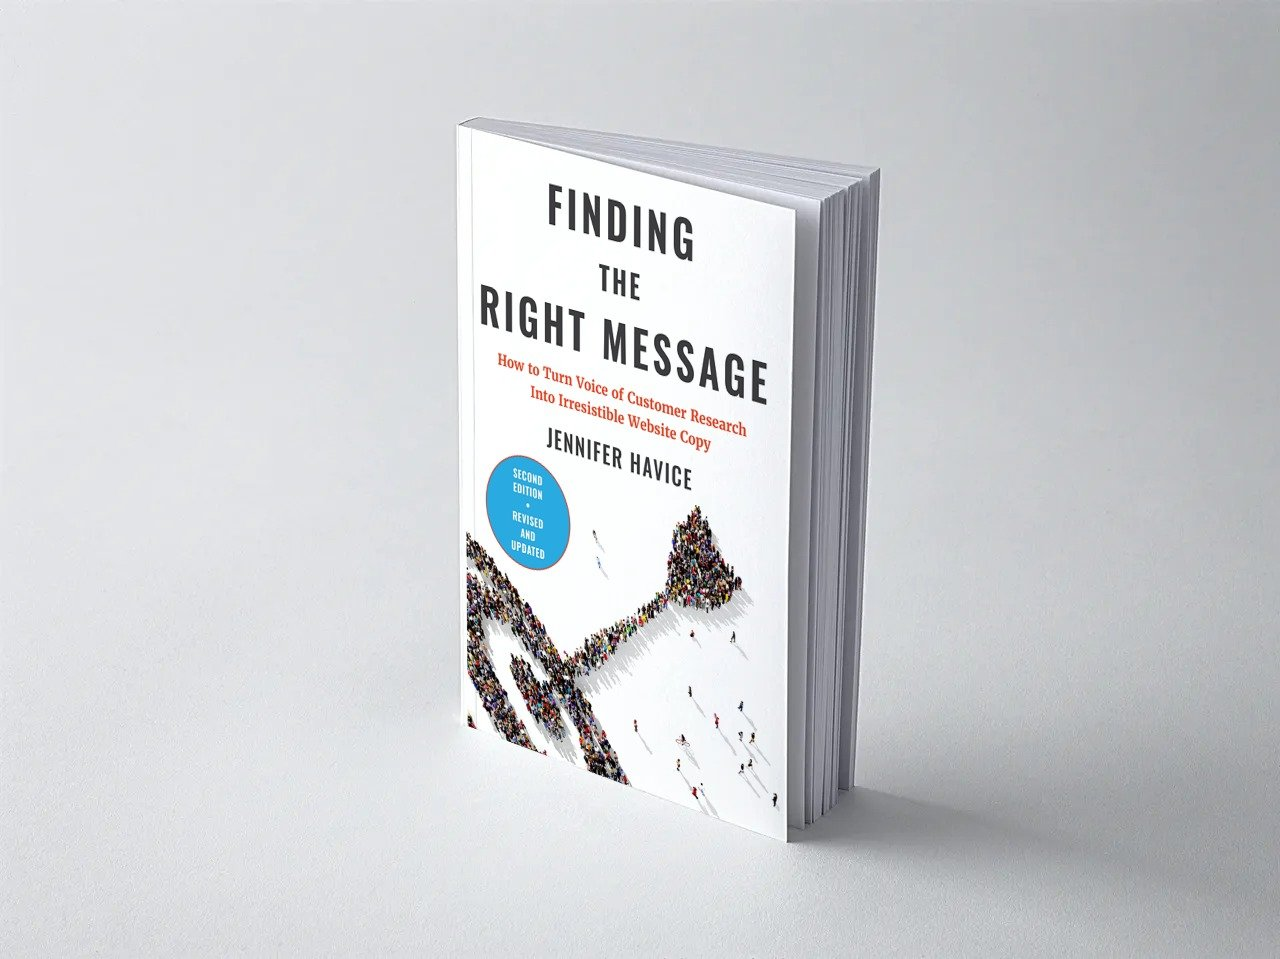 Finding the Right Message book